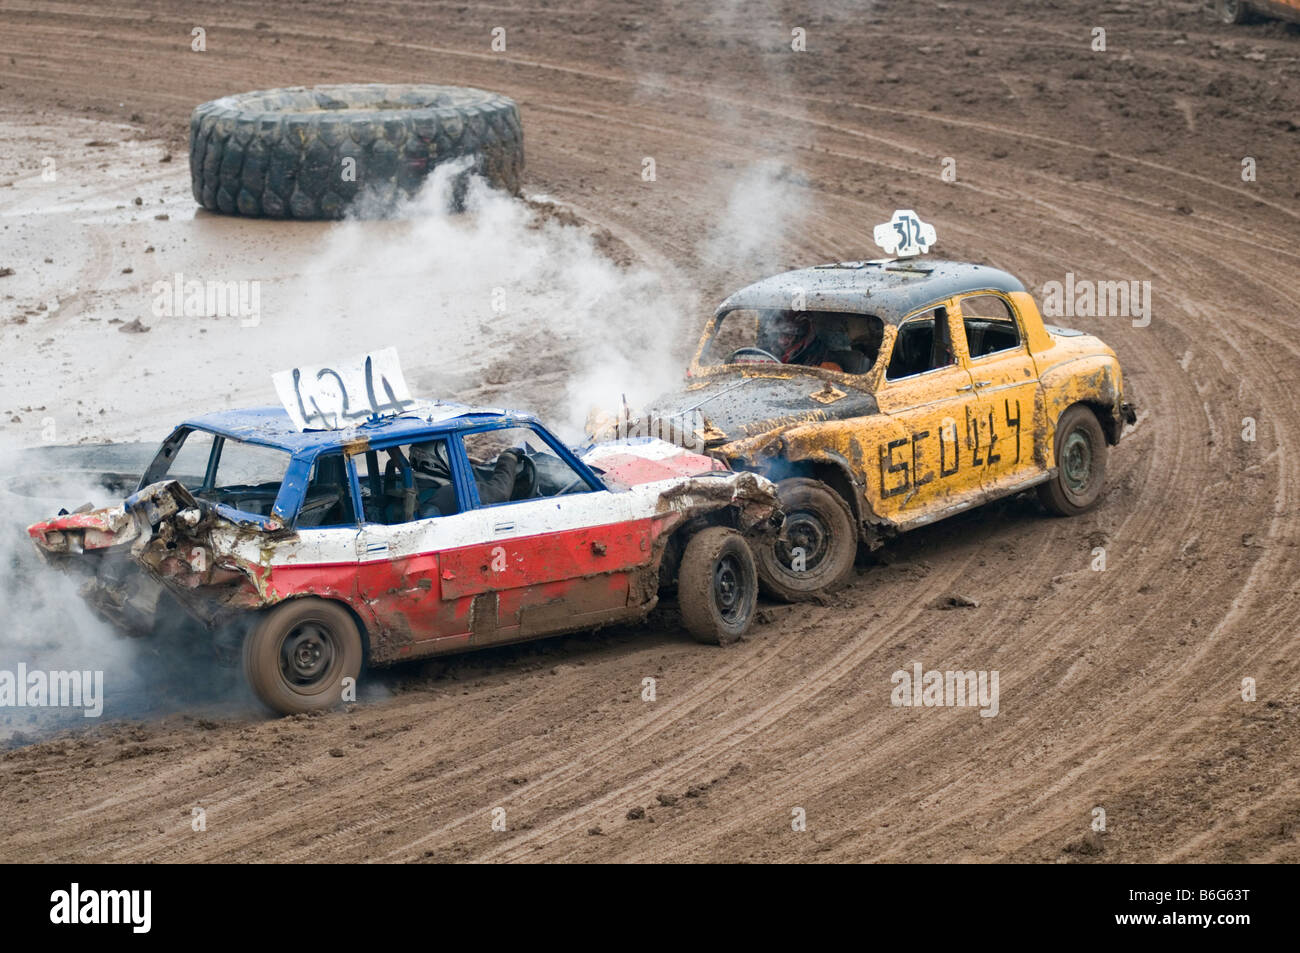 Banger Racing Stock Car Cars Demolition Destruction Derby Crash